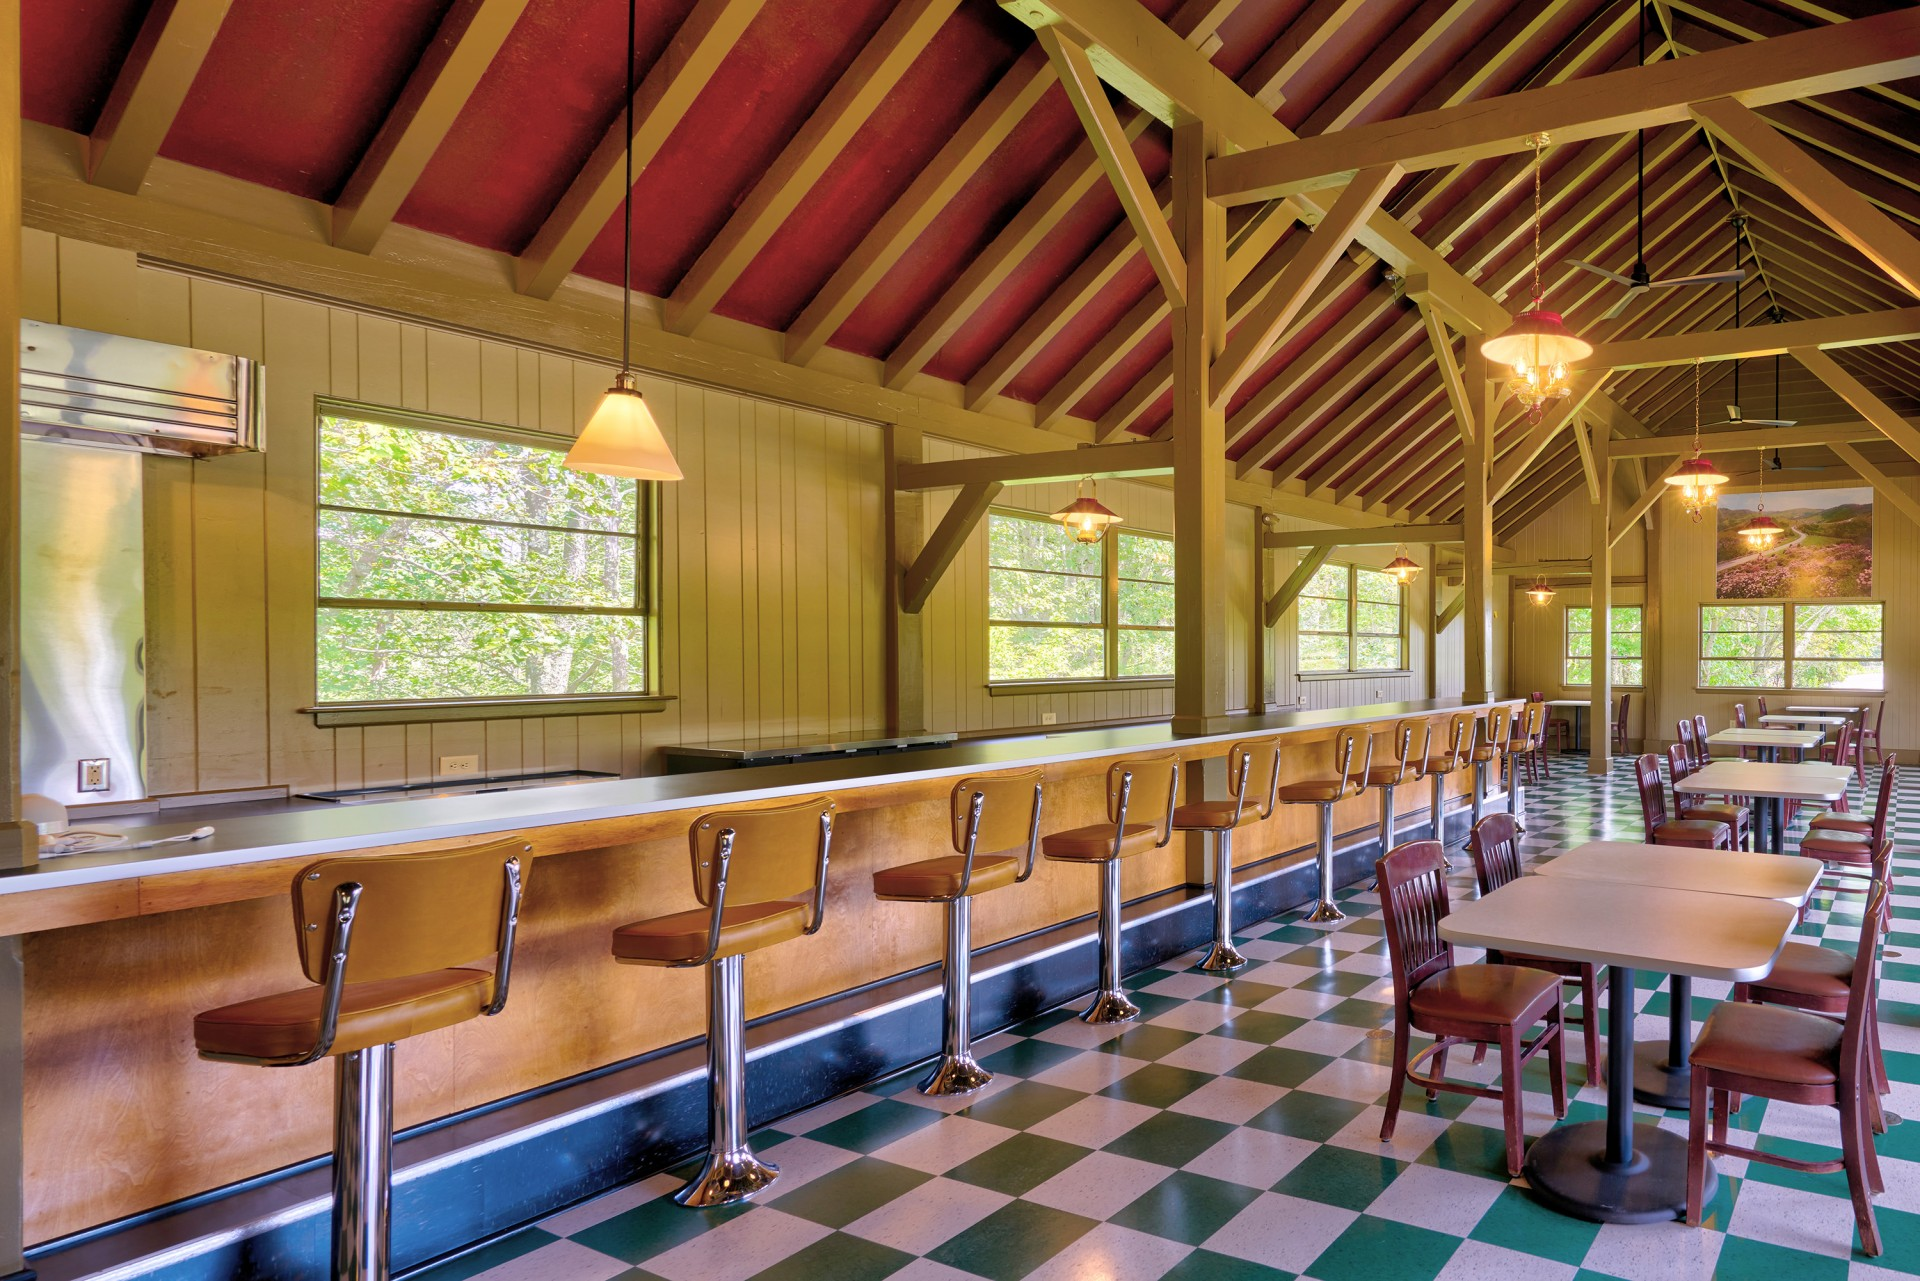 The Bluffs dining room with checkerboard floors and stools along a long lunch counter.